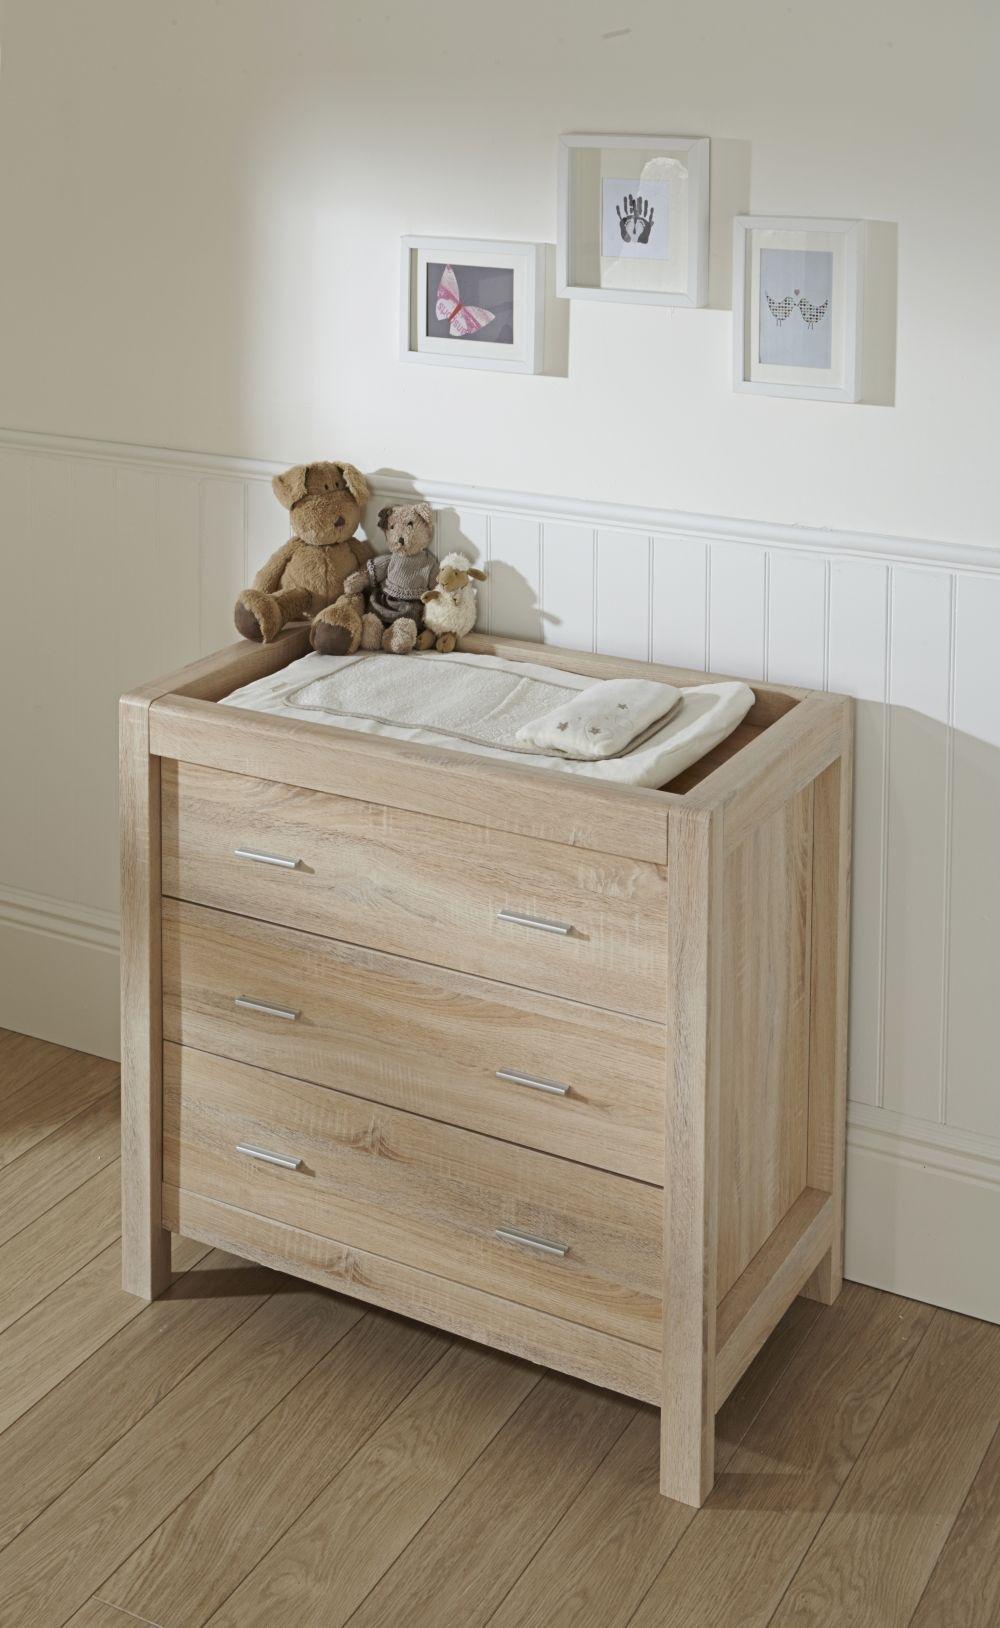 Tutti bambini milan oak chest changer review Nursery chest of drawers with changer